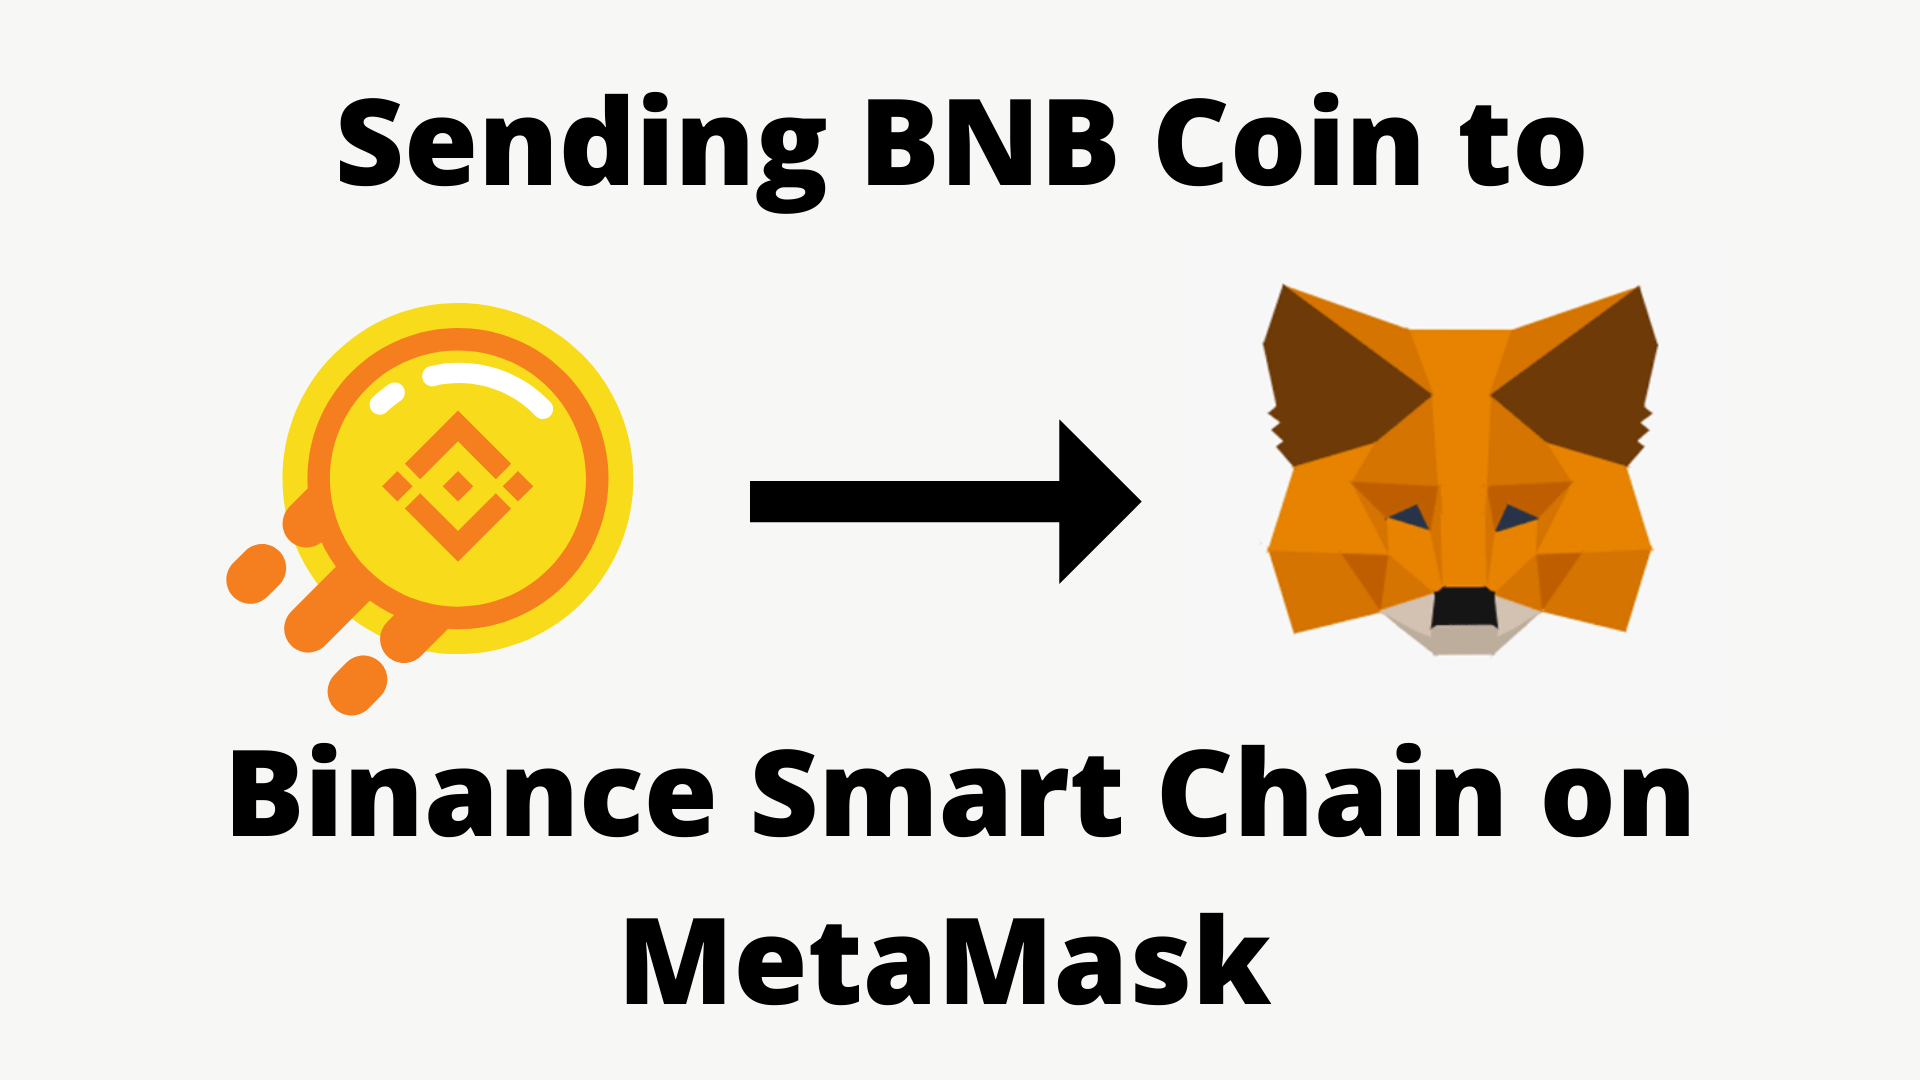 Send BNB Coin to Binance Smart Chain on MetaMask